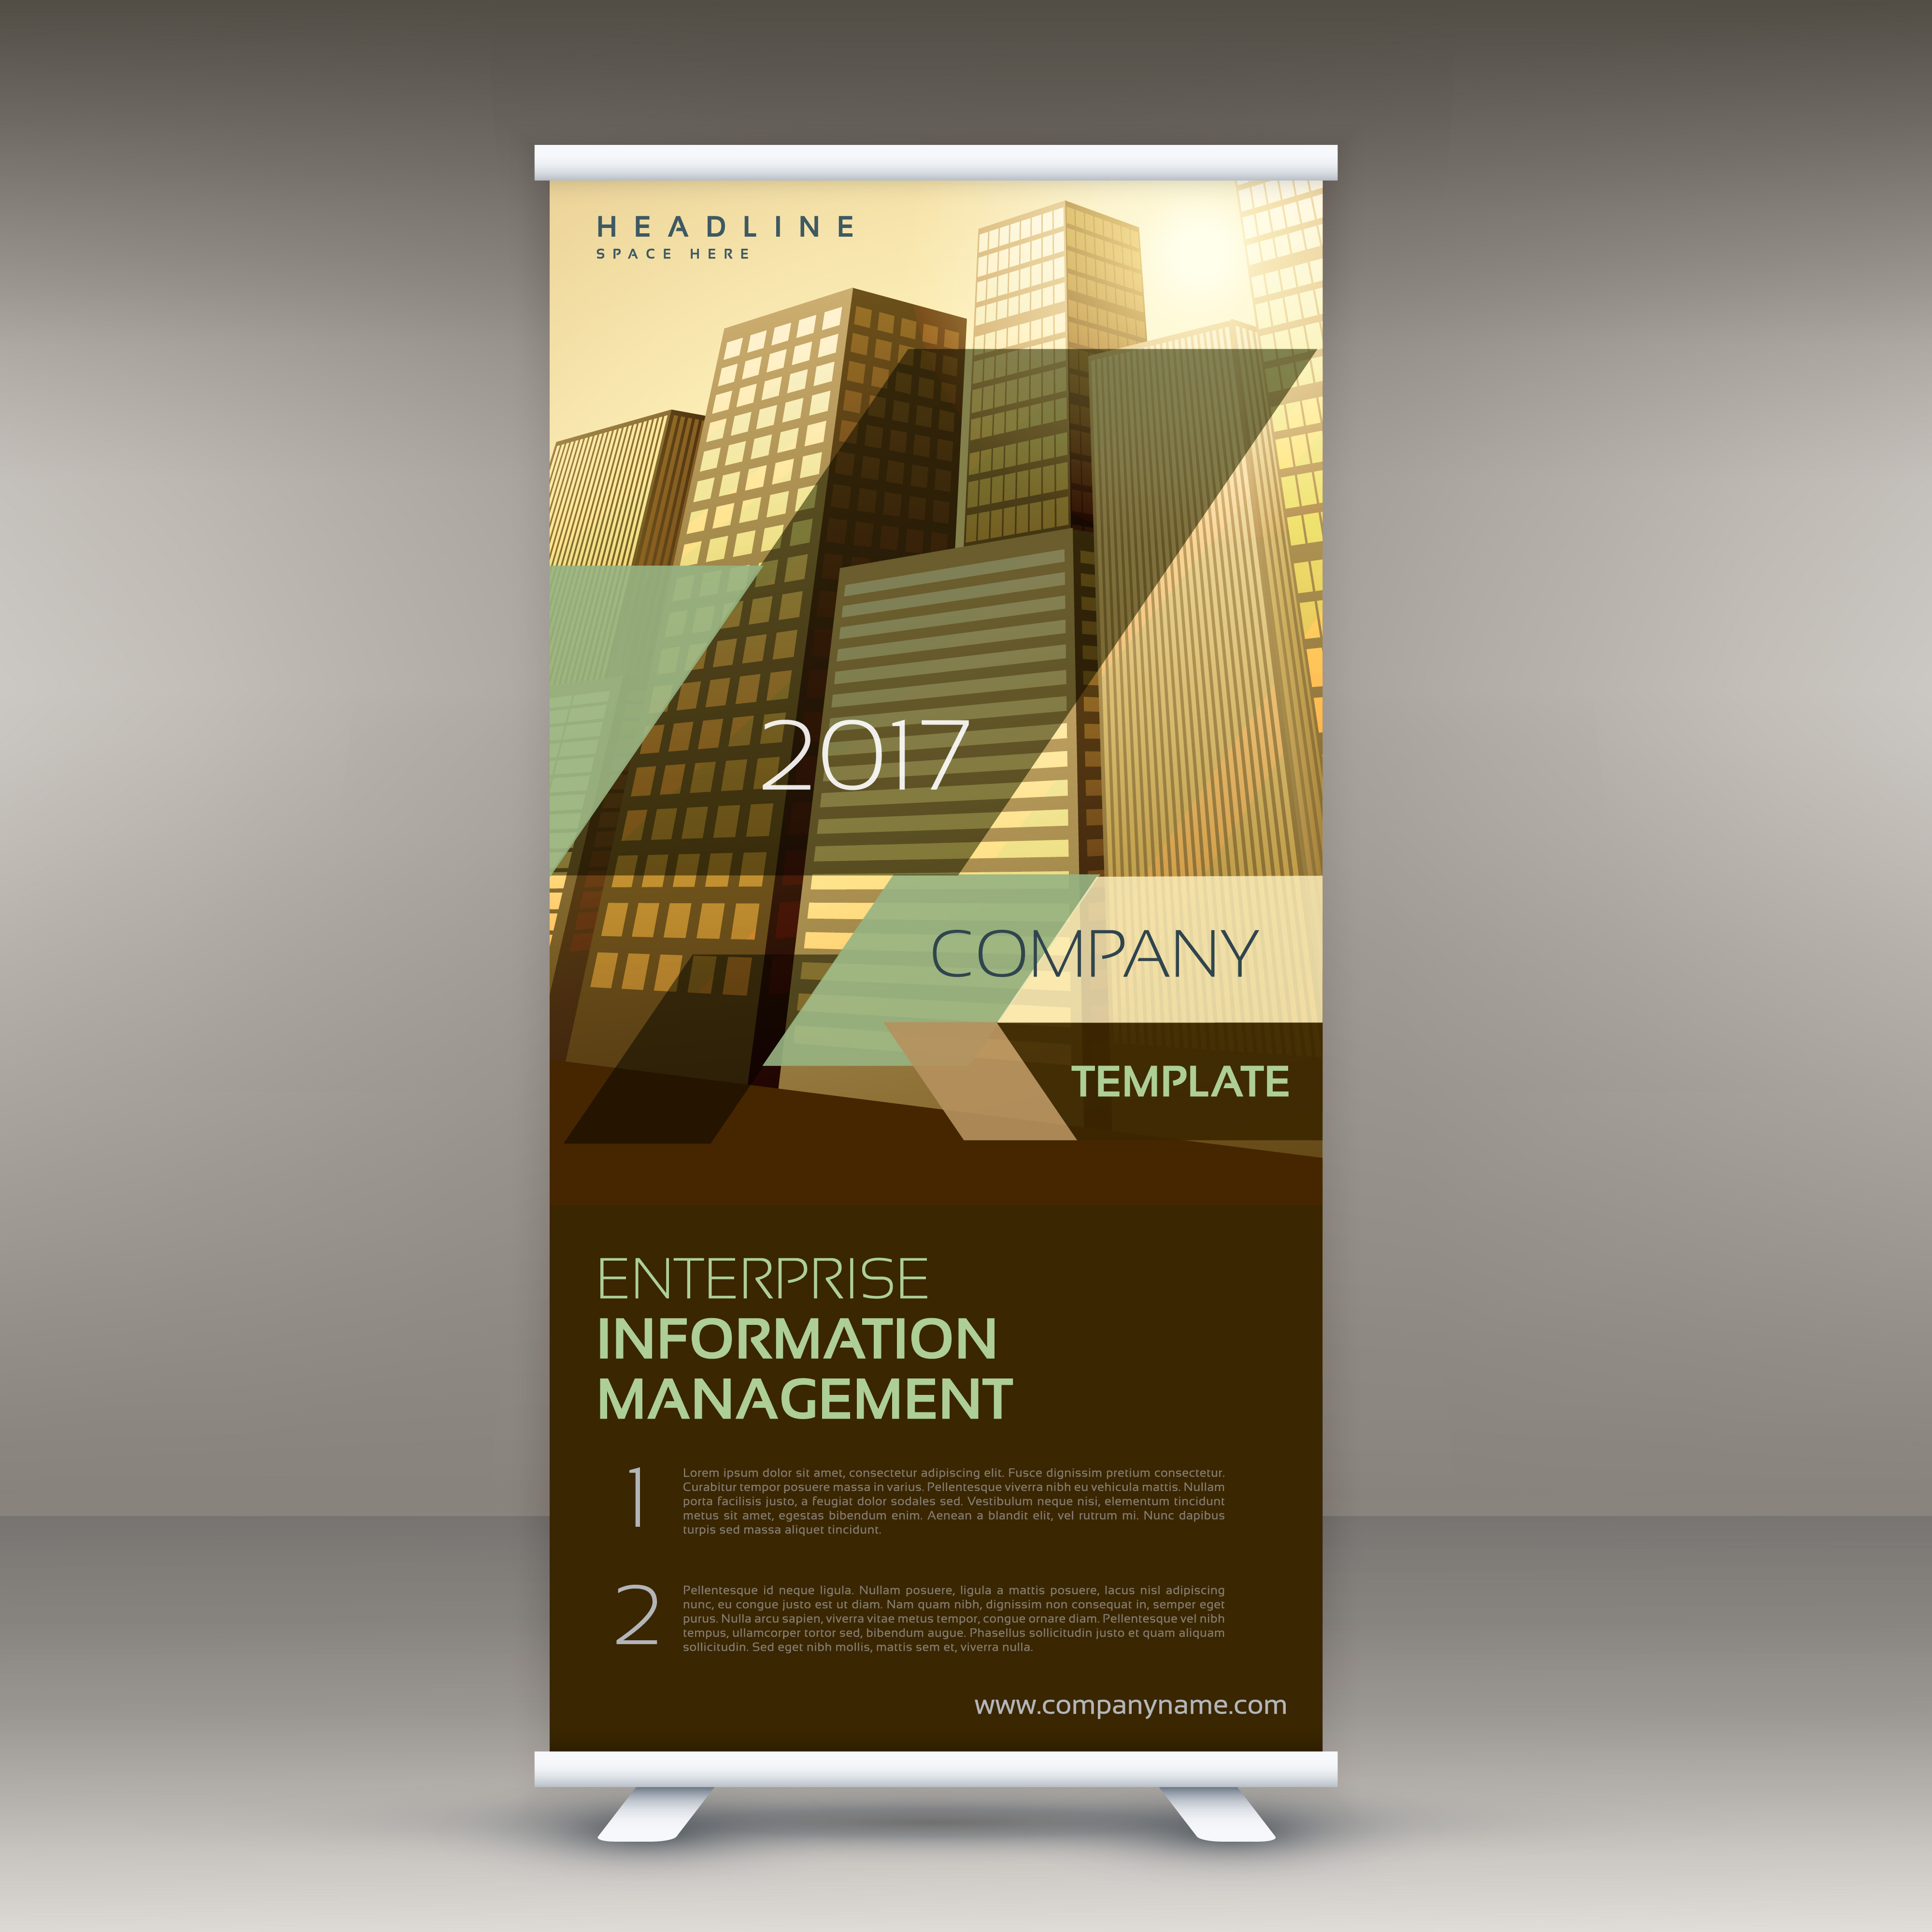 modern standee roll up banner design template for your